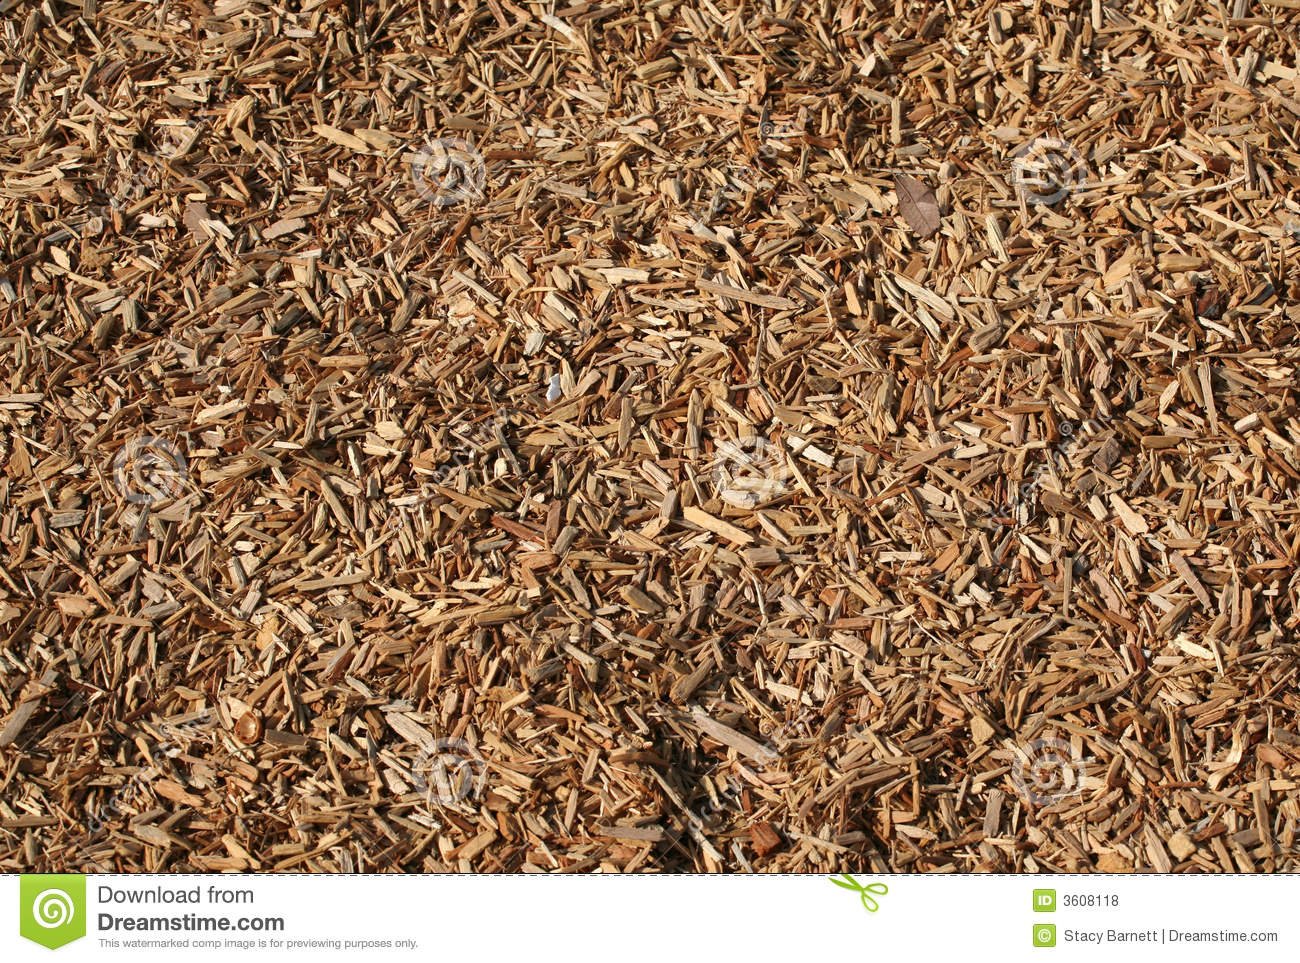 Wood chip royalty free stock photos image